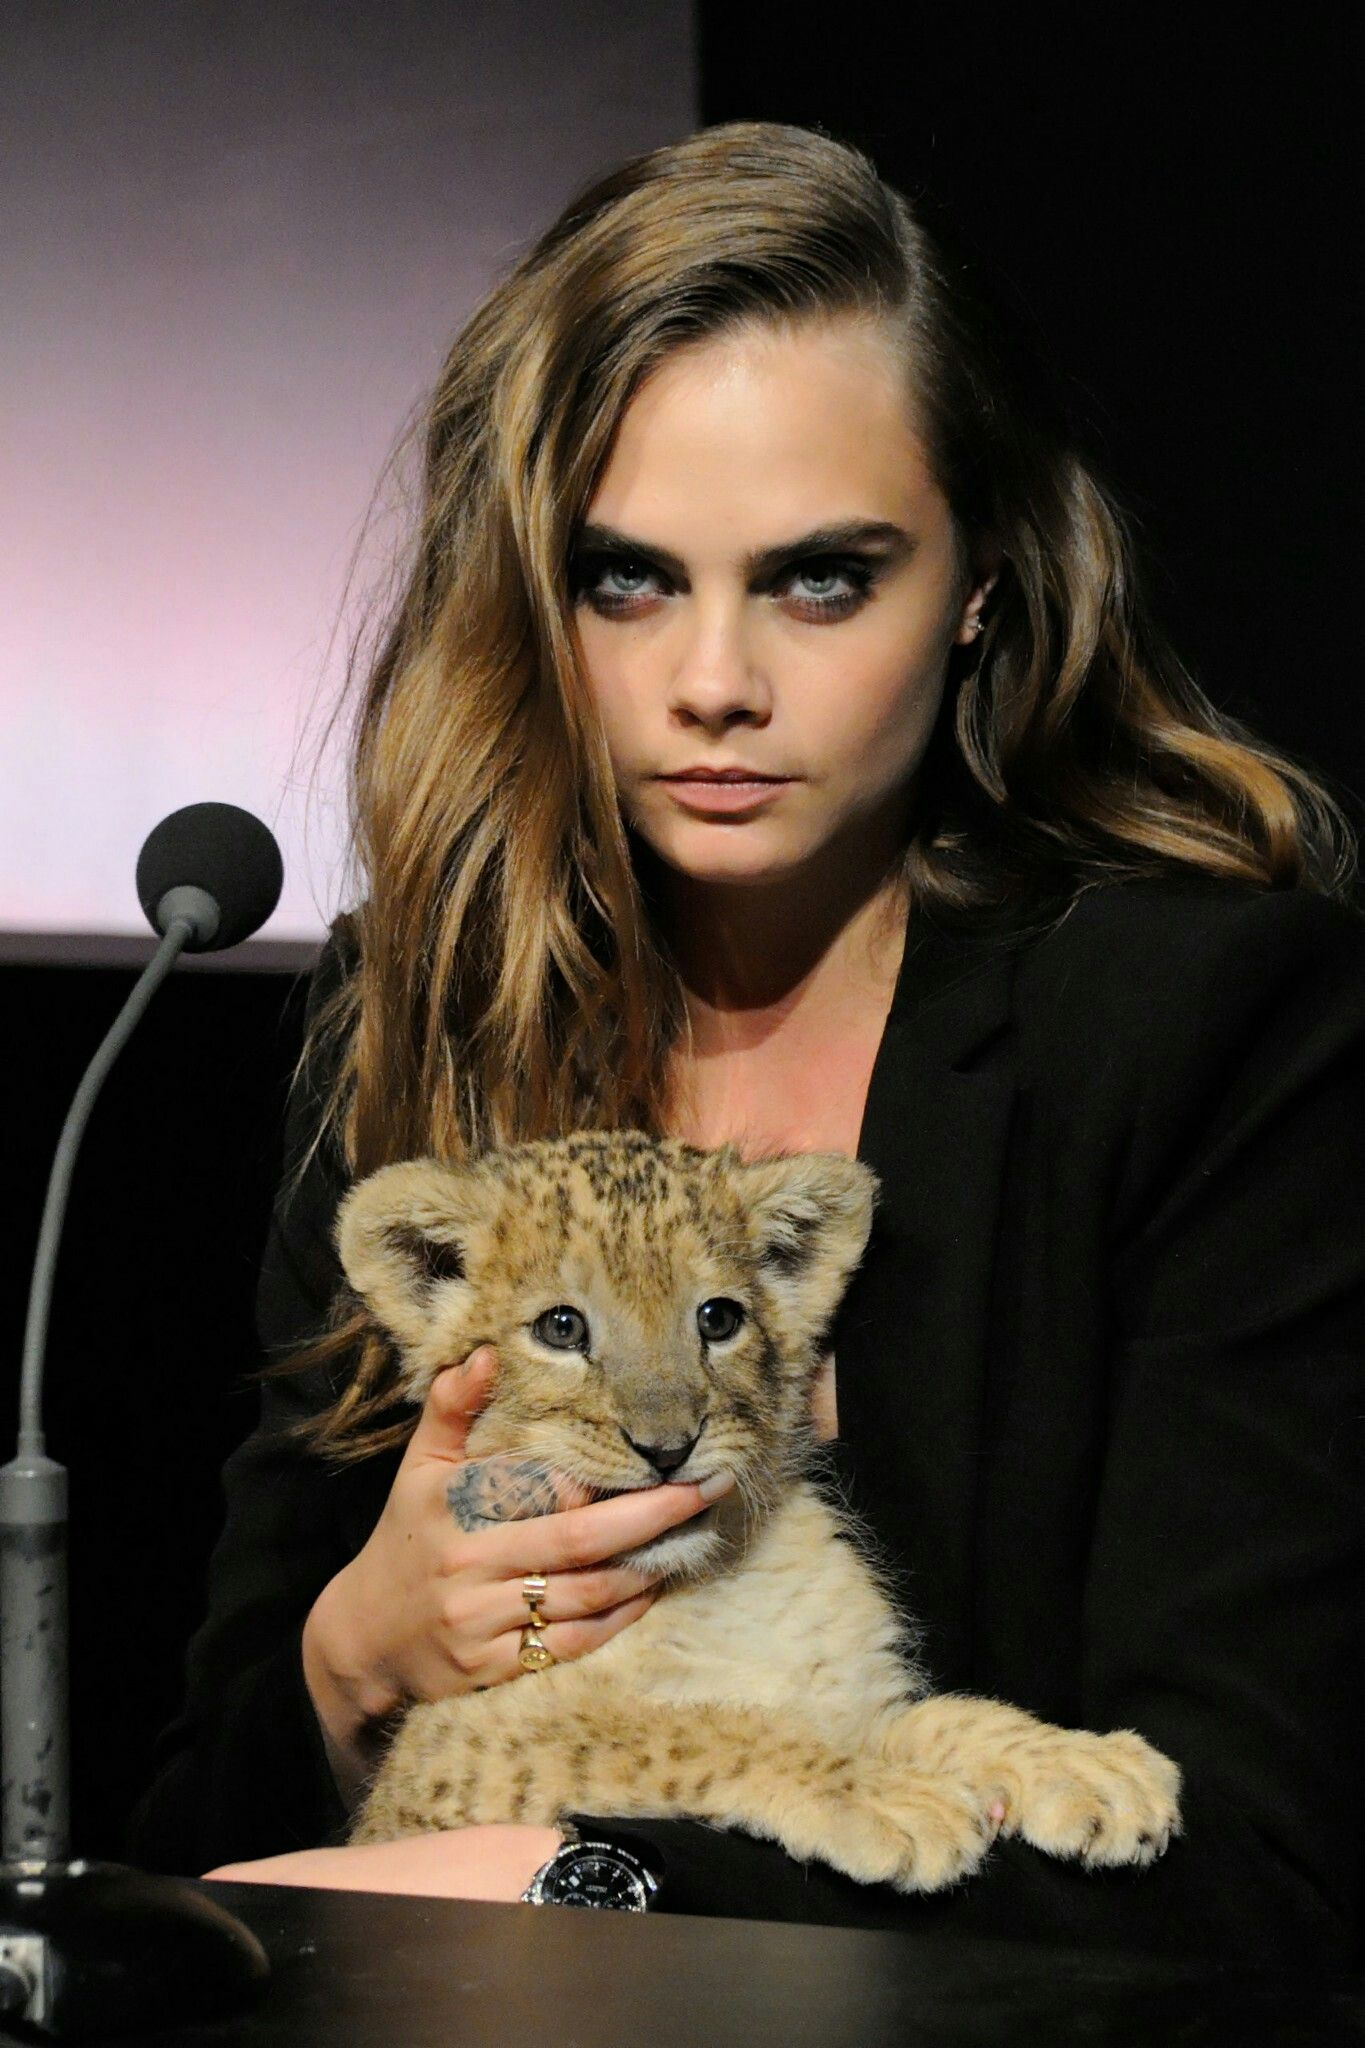 Lion Cub Female Models Delevingne Face Bikini Sweet Book Fashion Ideas Lions Confidence